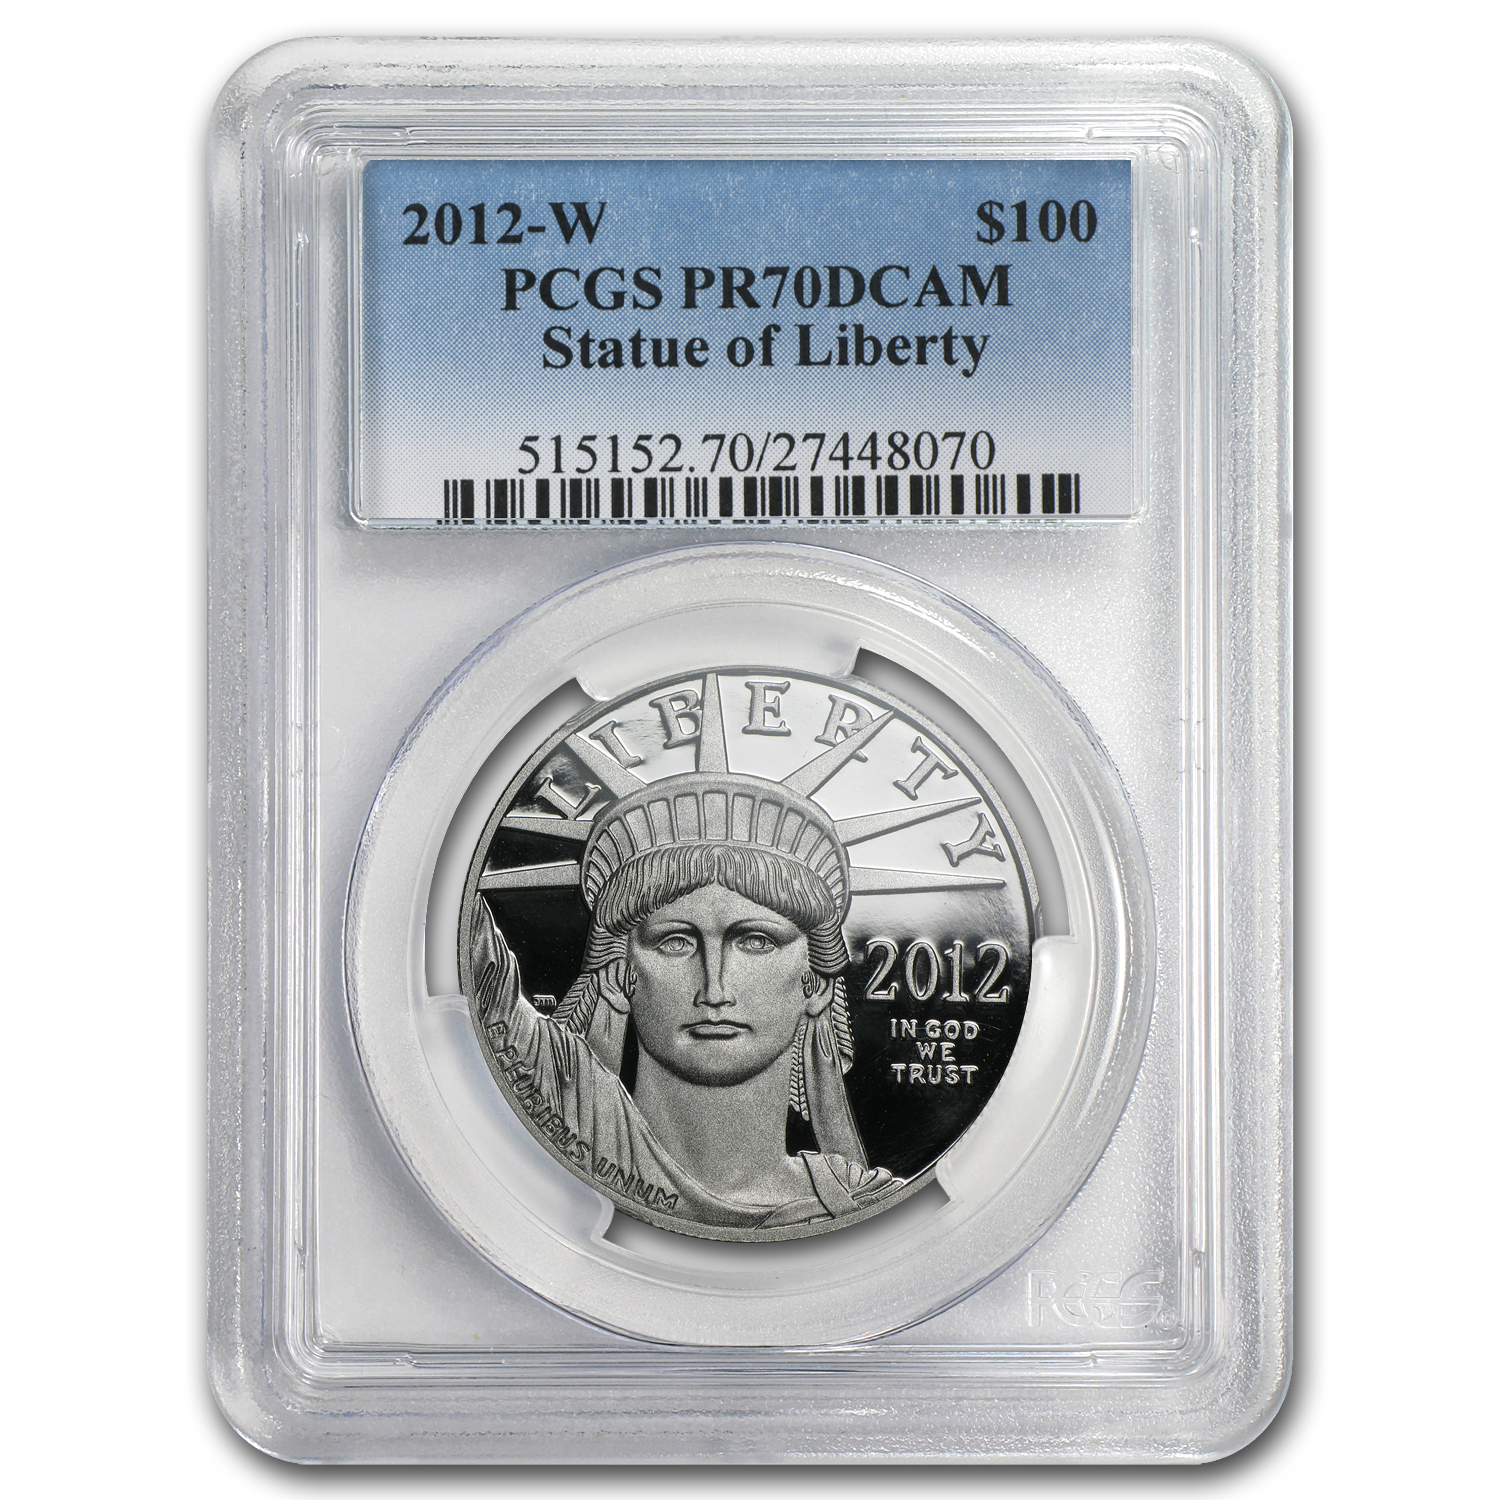 2012-W 1 oz Proof Platinum American Eagle PR-70 PCGS